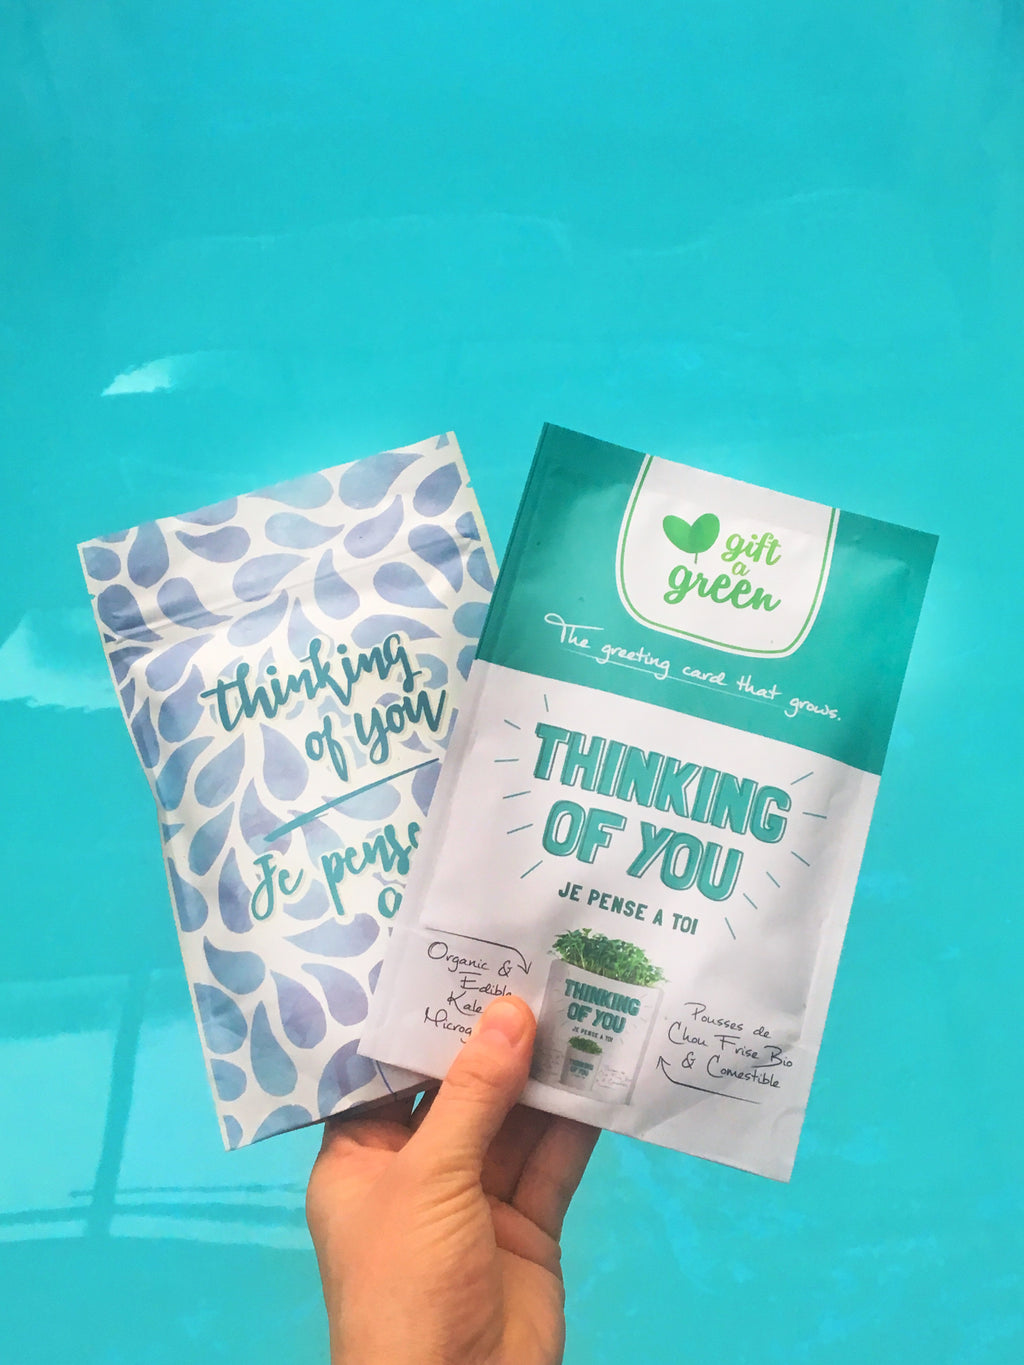 Gift-a-Green Thinking of You Combo Pack with Kale Seeds and Sleep Fairy Tea